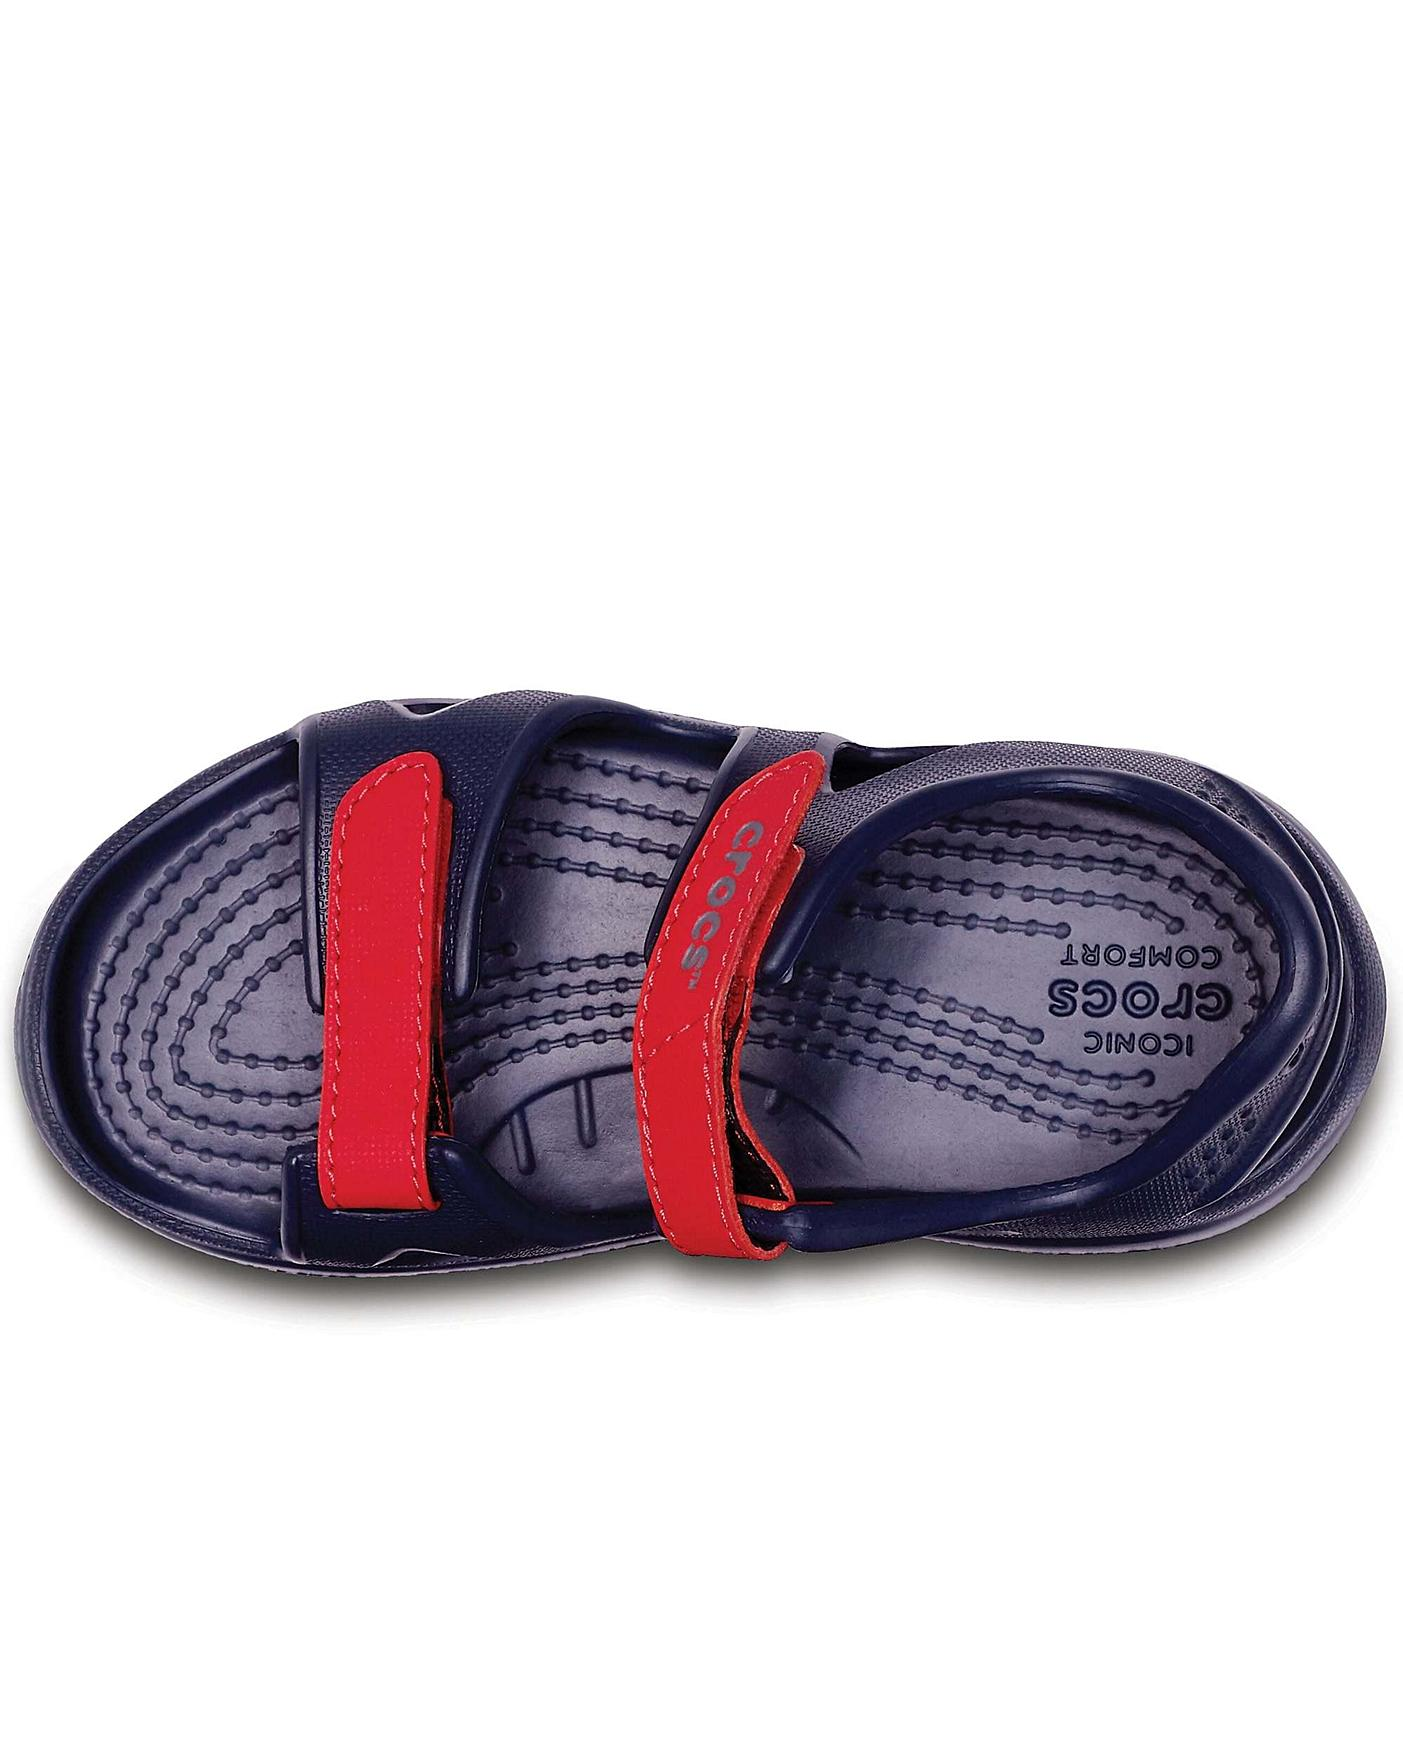 d50d160f9d4b Crocs Swiftwater Boys Sandals